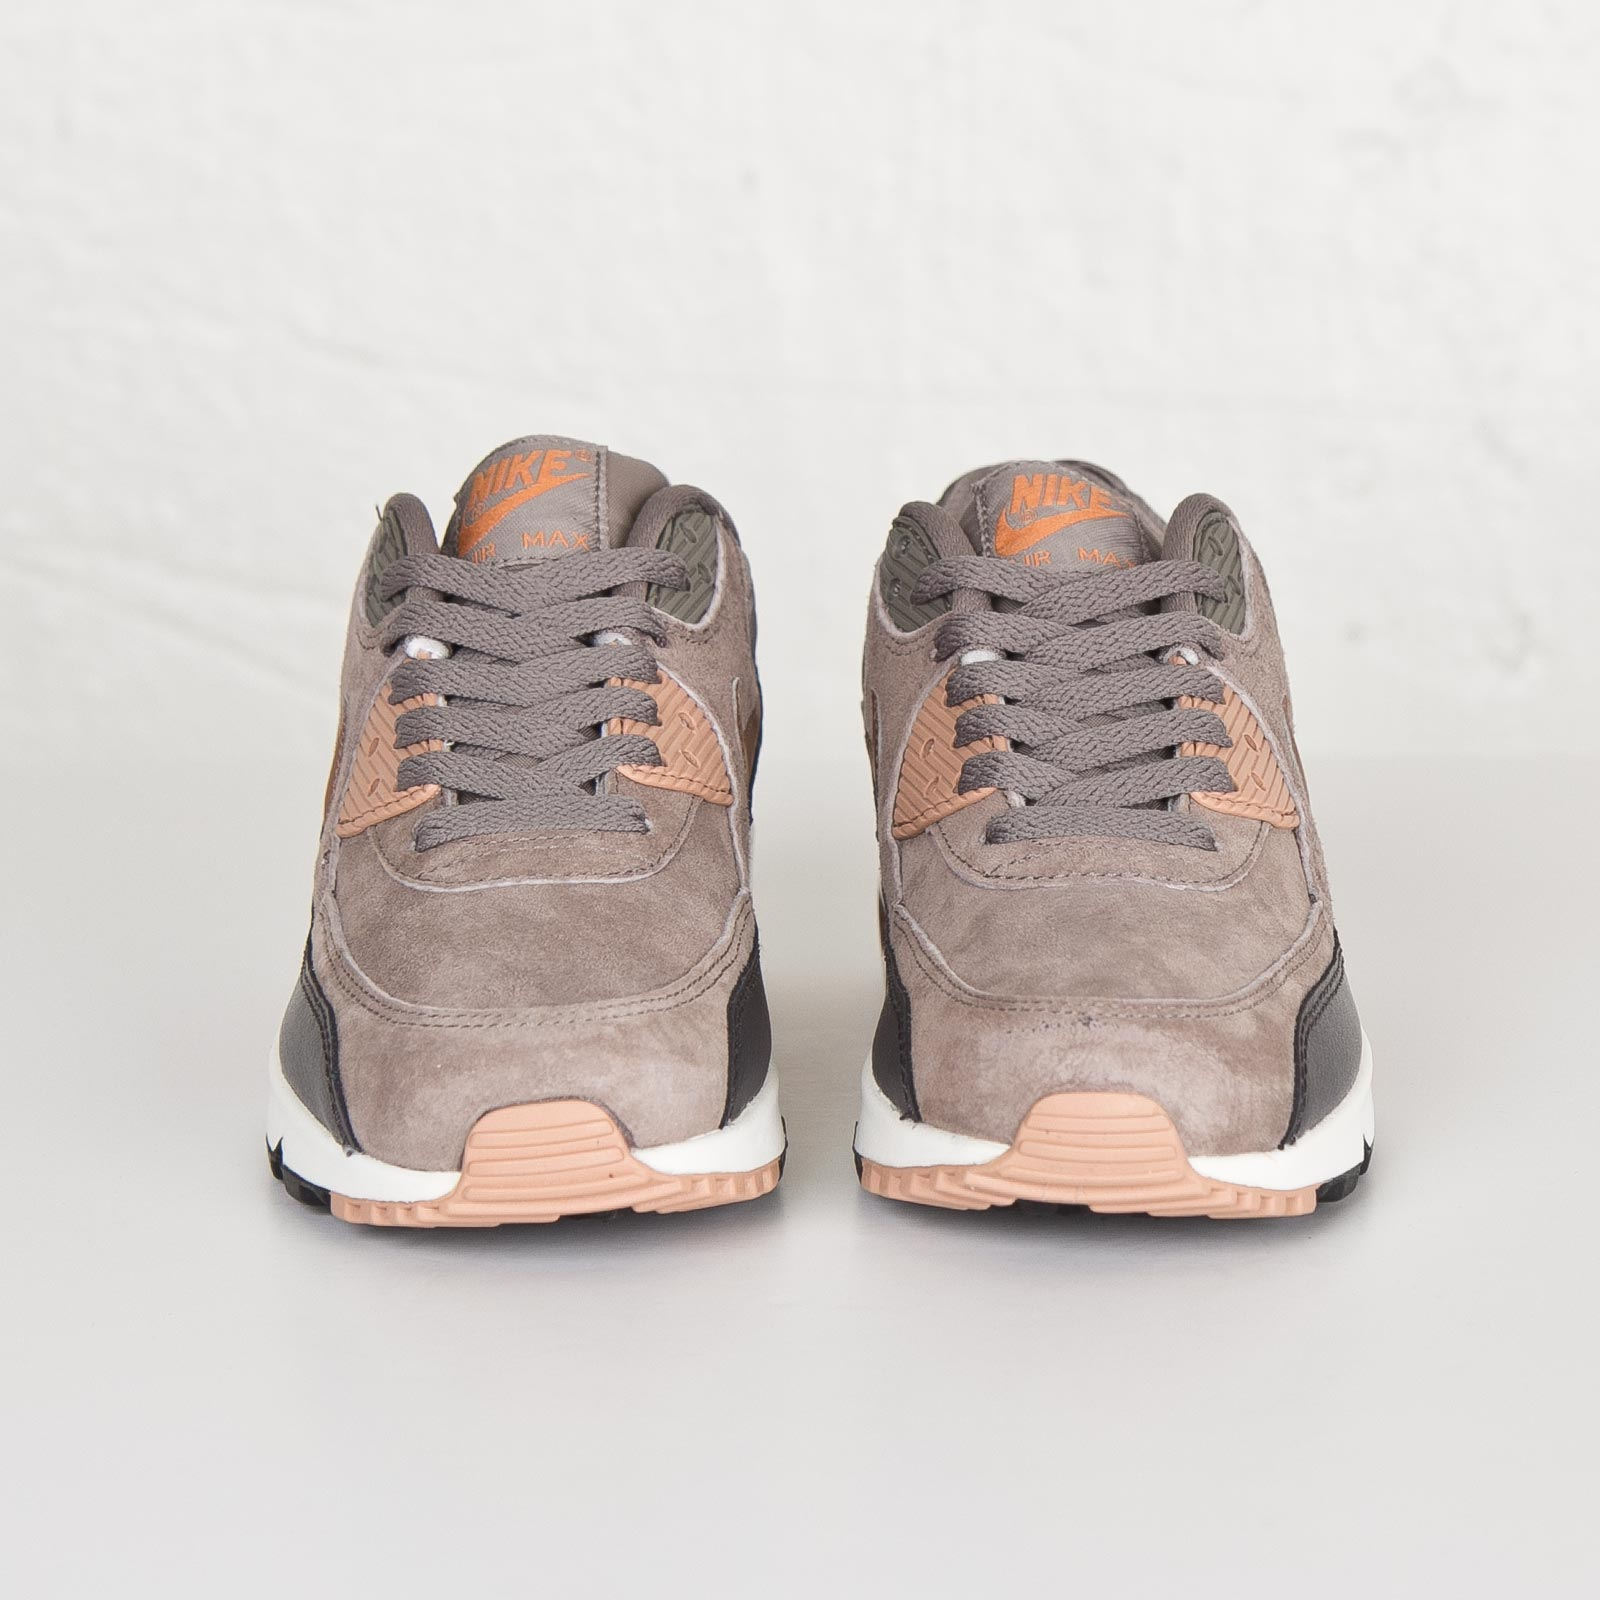 Nike Wmns Air Max 90 Leather - 768887-201 - Sneakersnstuff ...